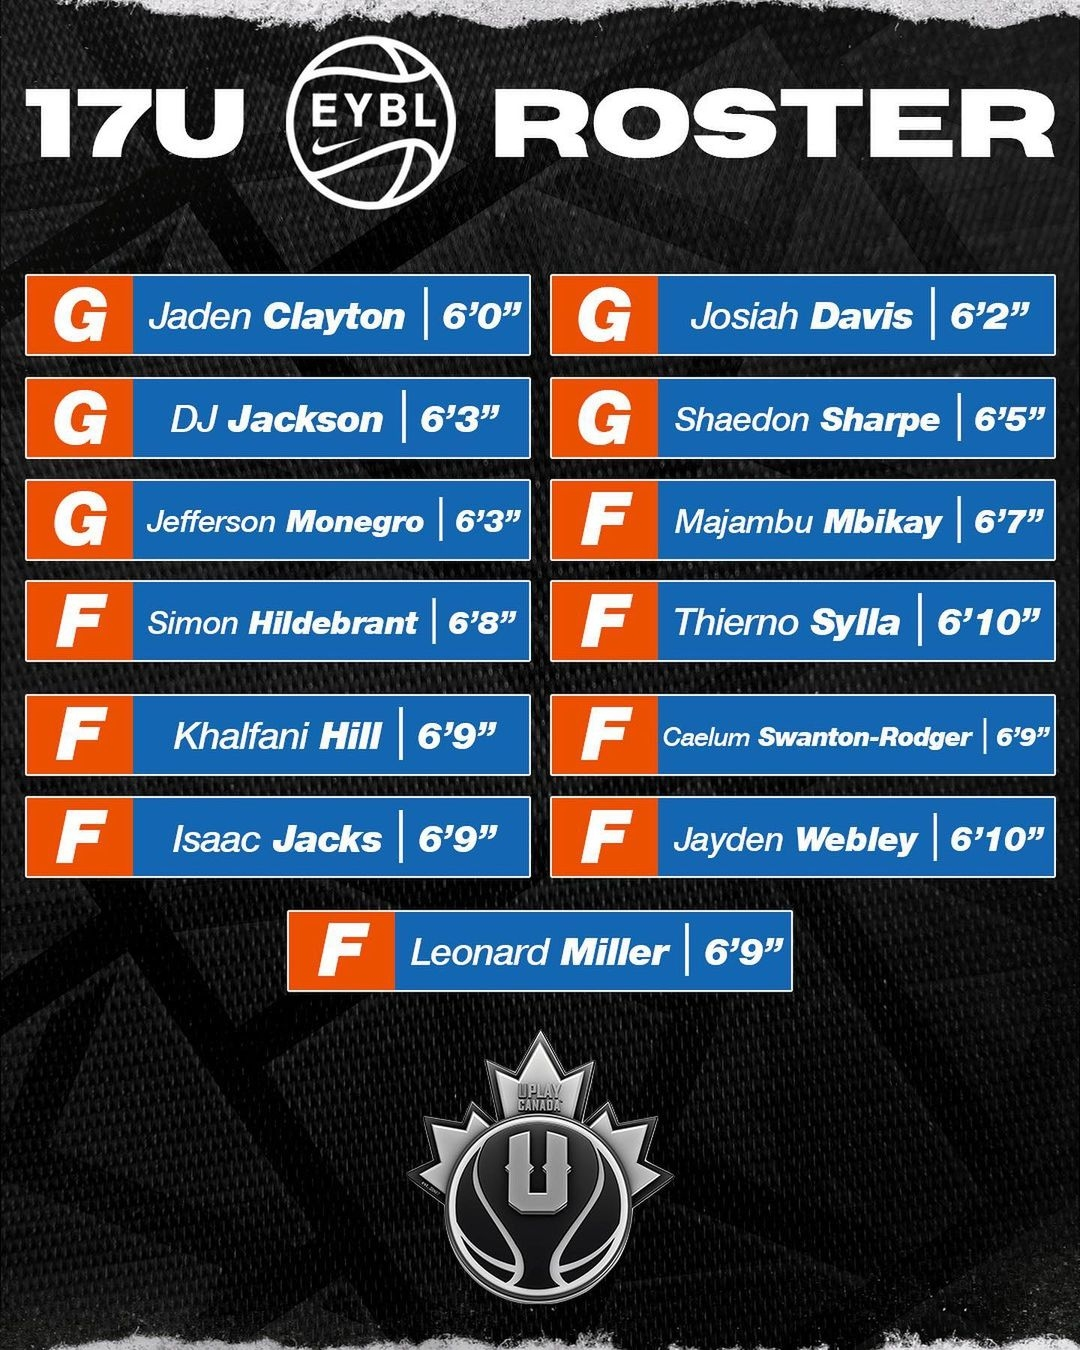 Uplay Canada U17 and U16 squads set for Nike EYBL & EYB action this weekend in Indianapolis